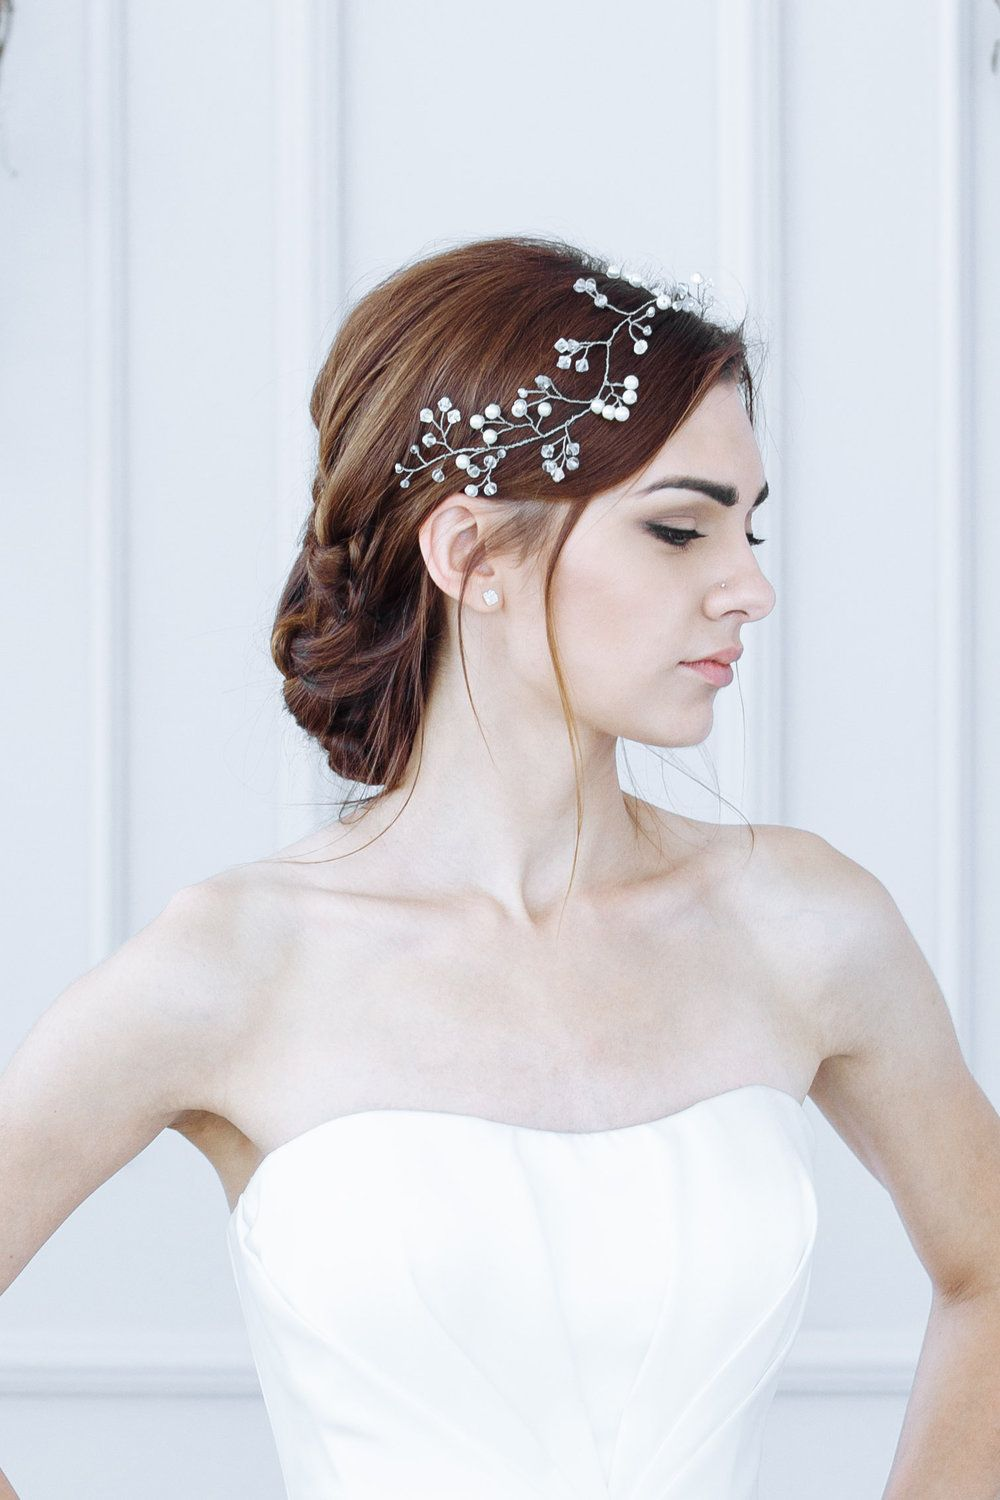 acconciatura sposa wedding hair fashion hairstyle 2018 bride ...